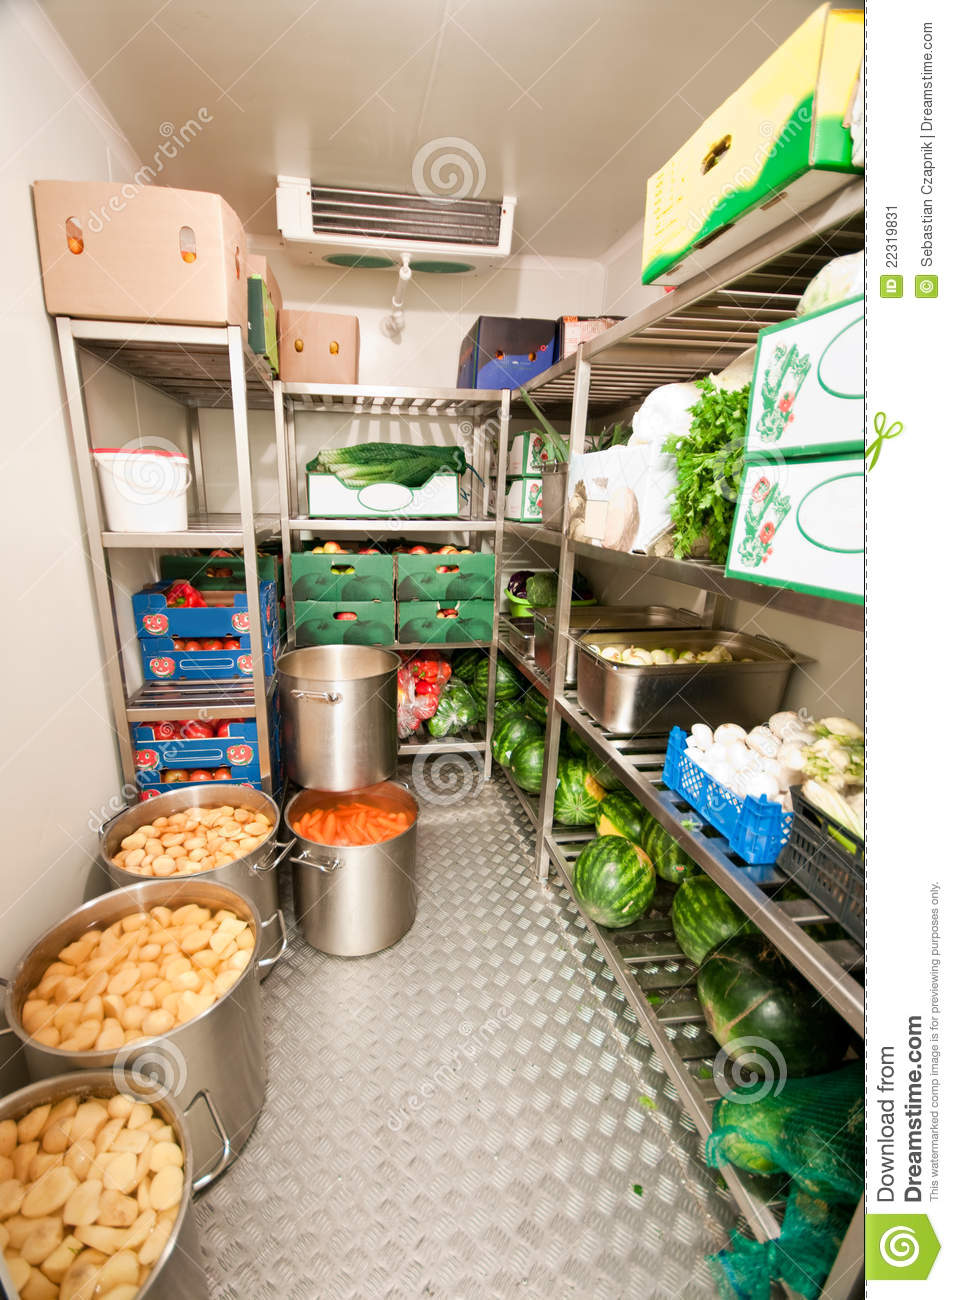 Walk-in Refrigerator Cooler Stock Image - Image: 22319831